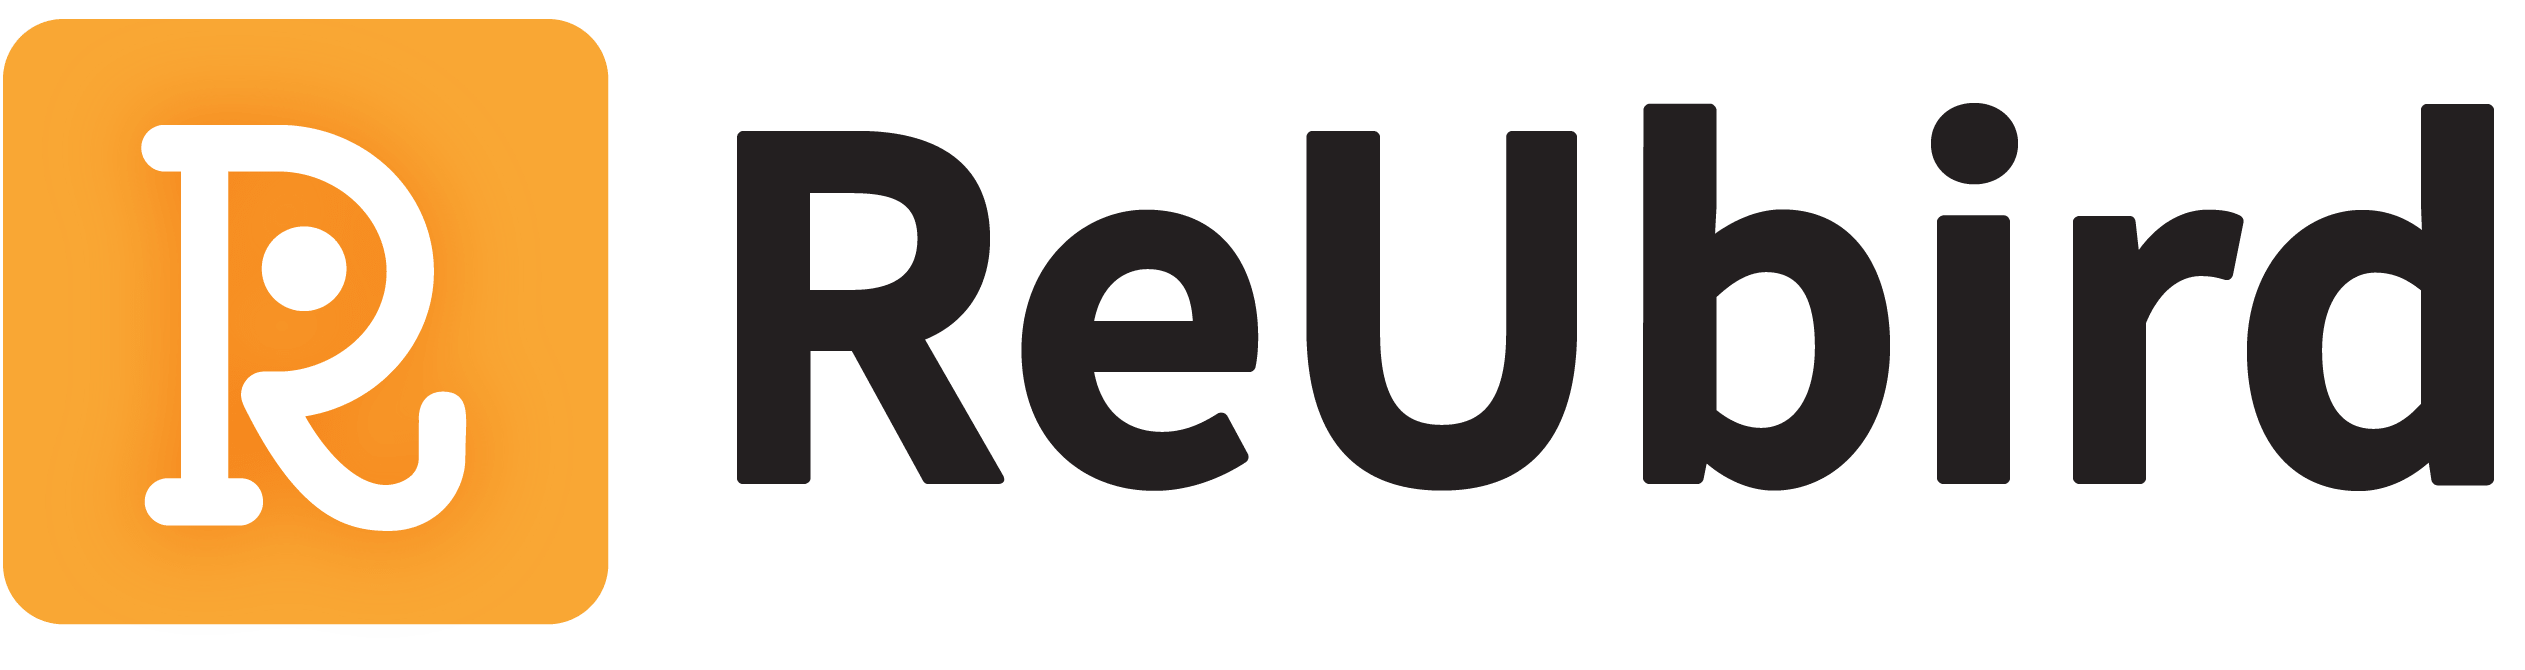 reubird-logo